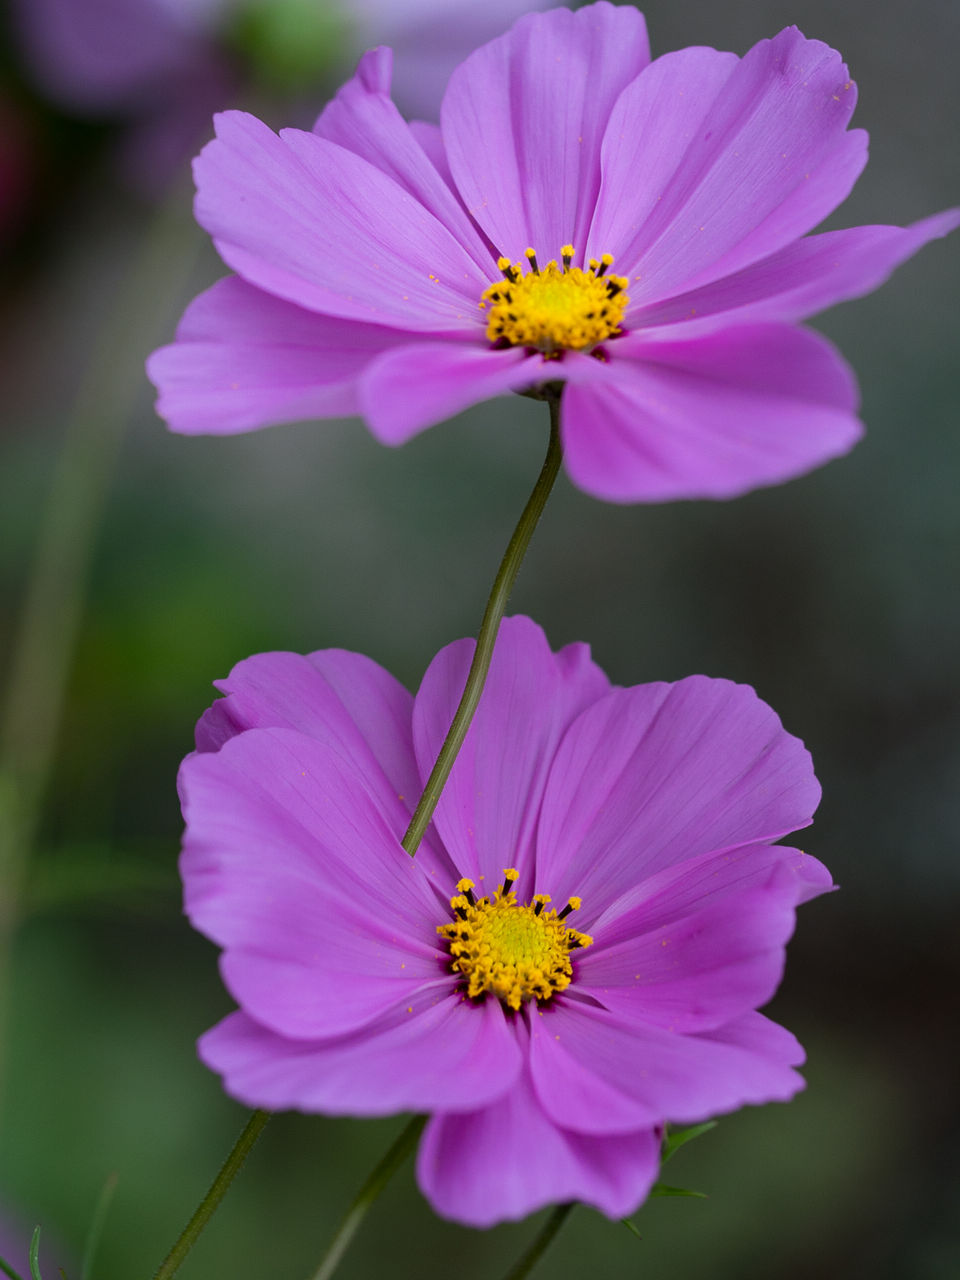 flower, flowering plant, fragility, petal, vulnerability, freshness, flower head, plant, beauty in nature, inflorescence, growth, close-up, pollen, cosmos flower, focus on foreground, nature, pink color, yellow, day, no people, purple